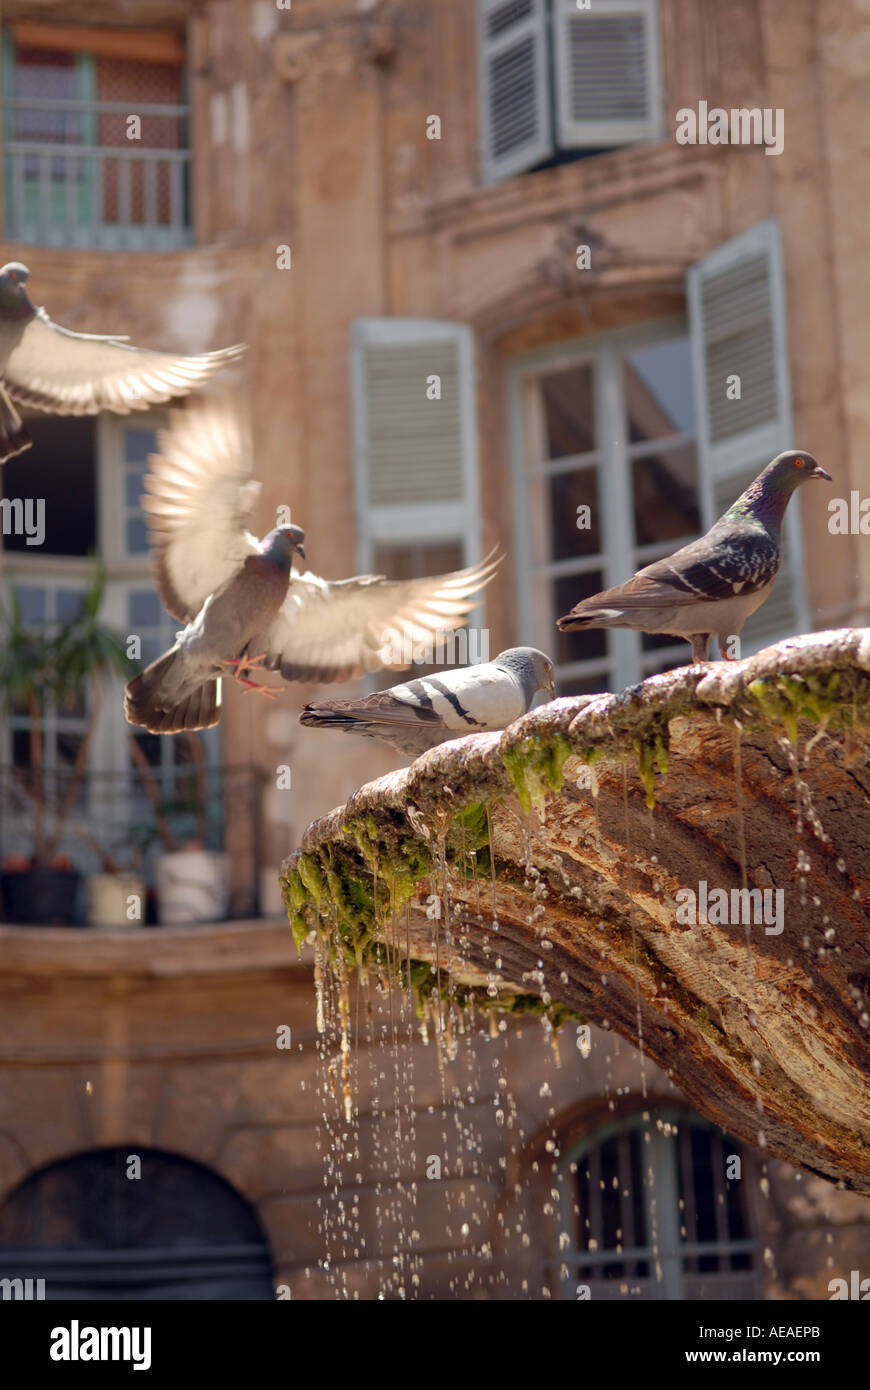 Pigeons on a fountain, Aix en Provence, France - Stock Image